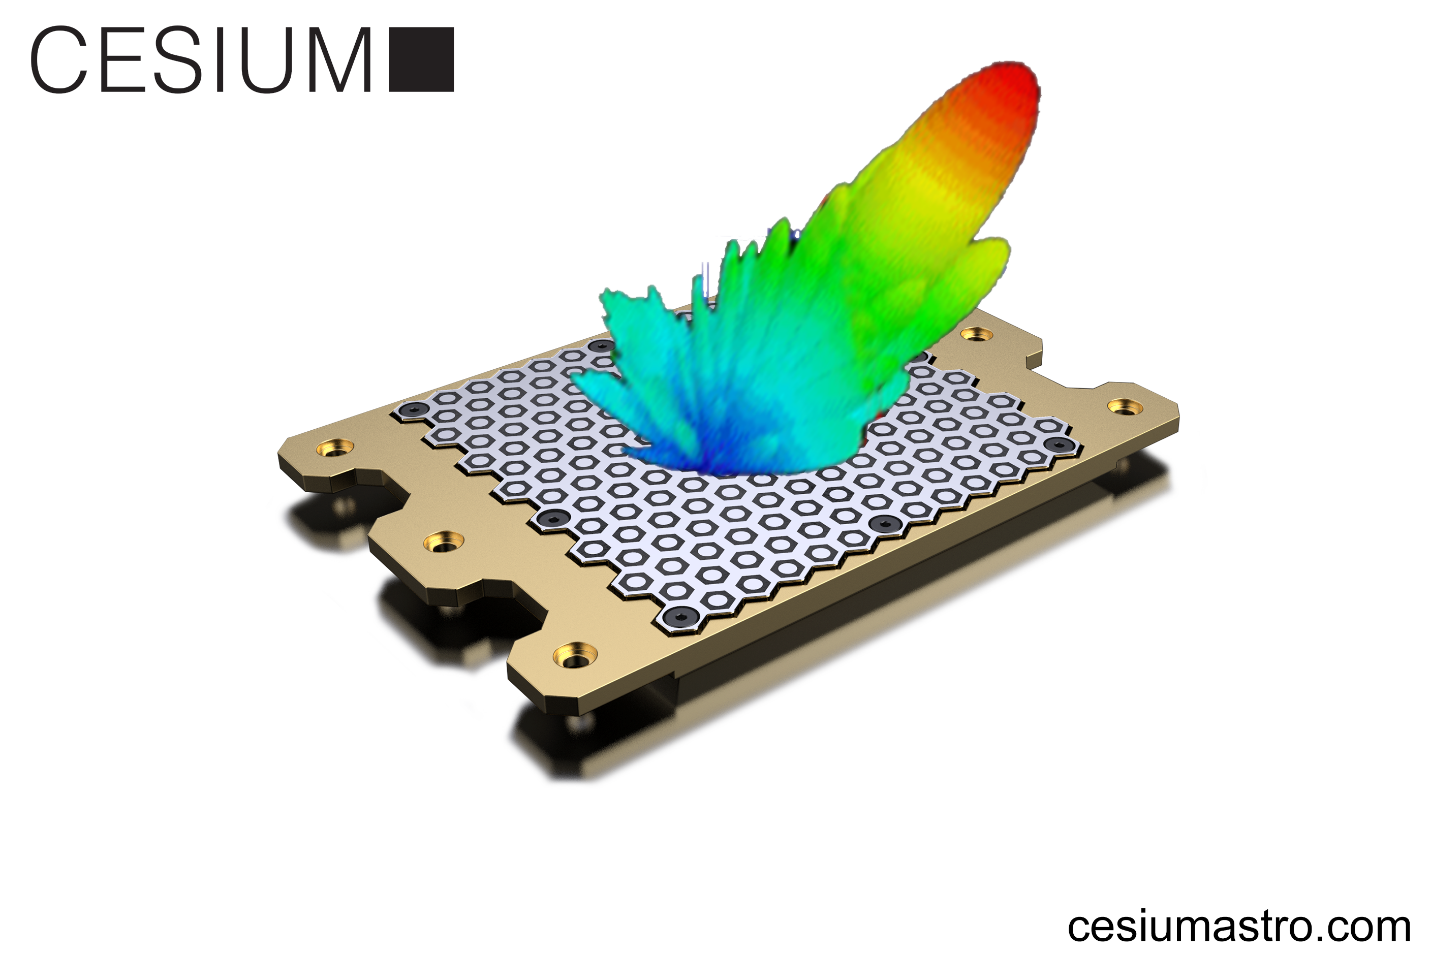 CesiumAstro's Flight-Ready Ka-Band Active Phased Array Antenna for Space and Airborne Missions